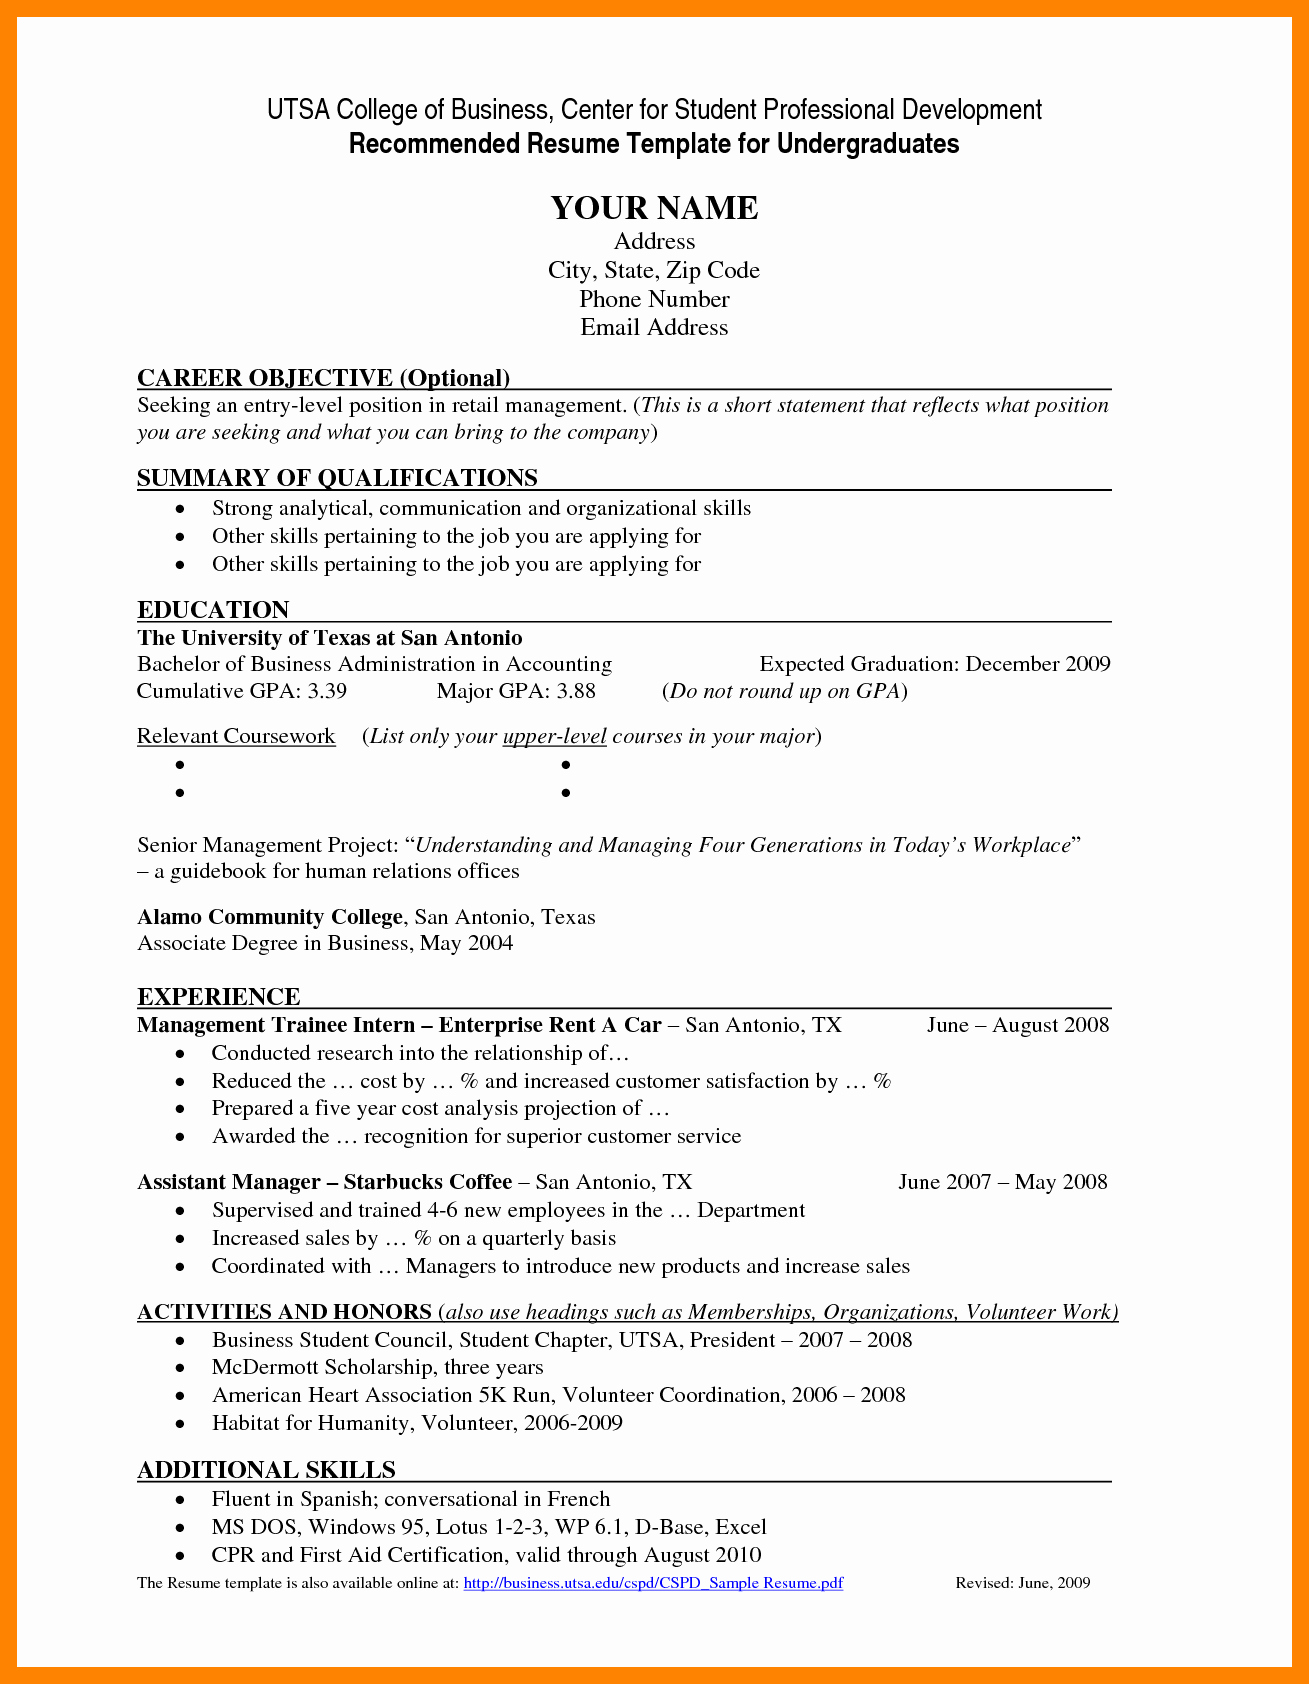 Resume for Recent College Grad Awesome Resume Objective Examples for Recent College Graduates